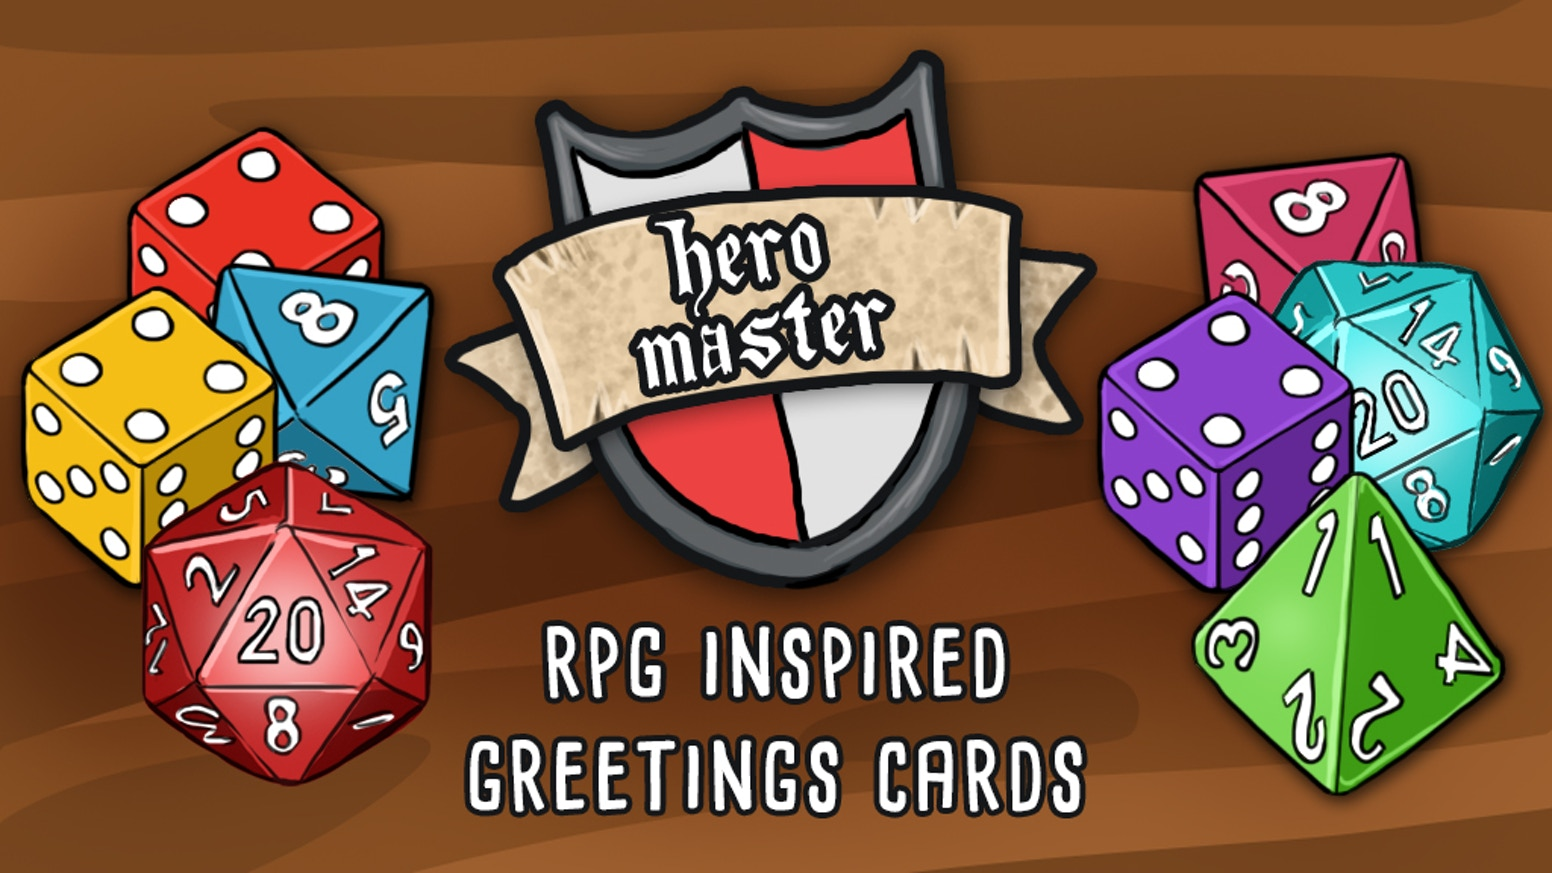 Looking for that perfect card for your gaming group? Humorous greetings cards for fantasy fans, gamers and part-time paladins.